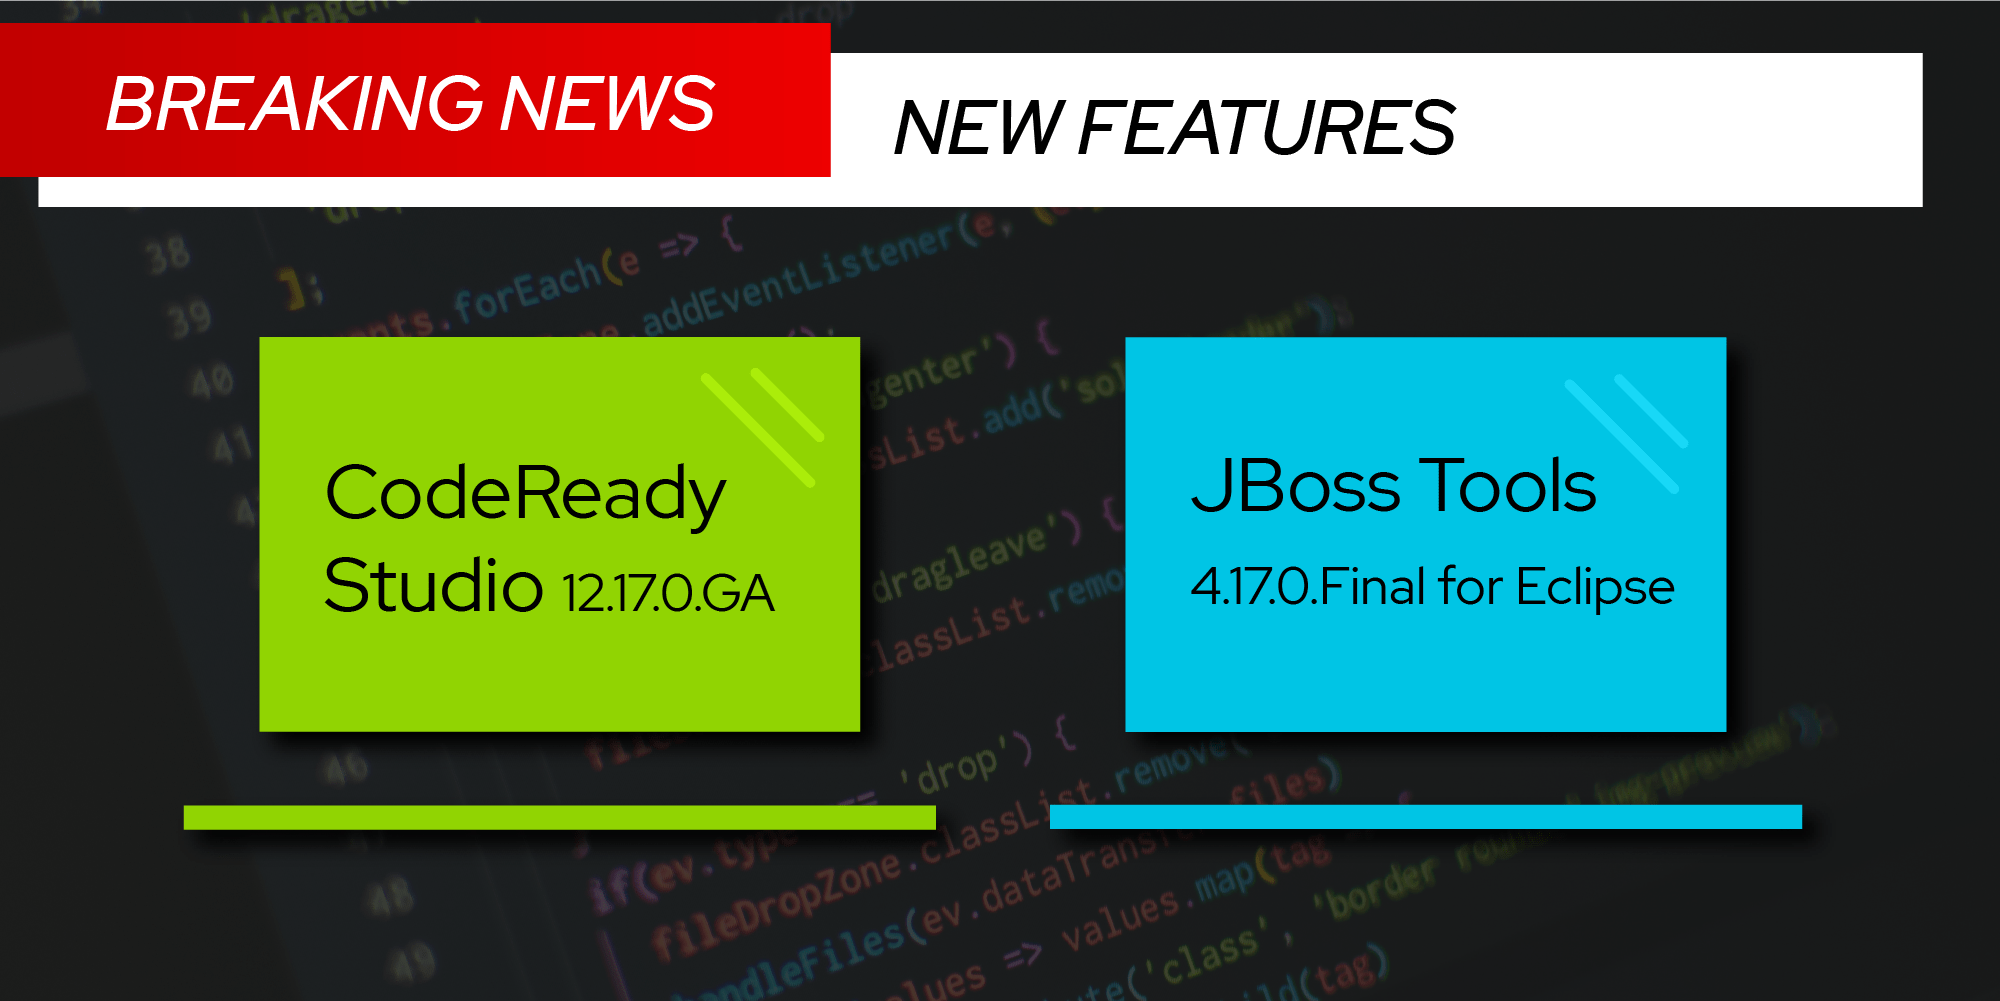 New features in Red Hat CodeReady Studio 12.17 GA and JBoss Tools 4.17.0 Final for Eclipse 2020-09